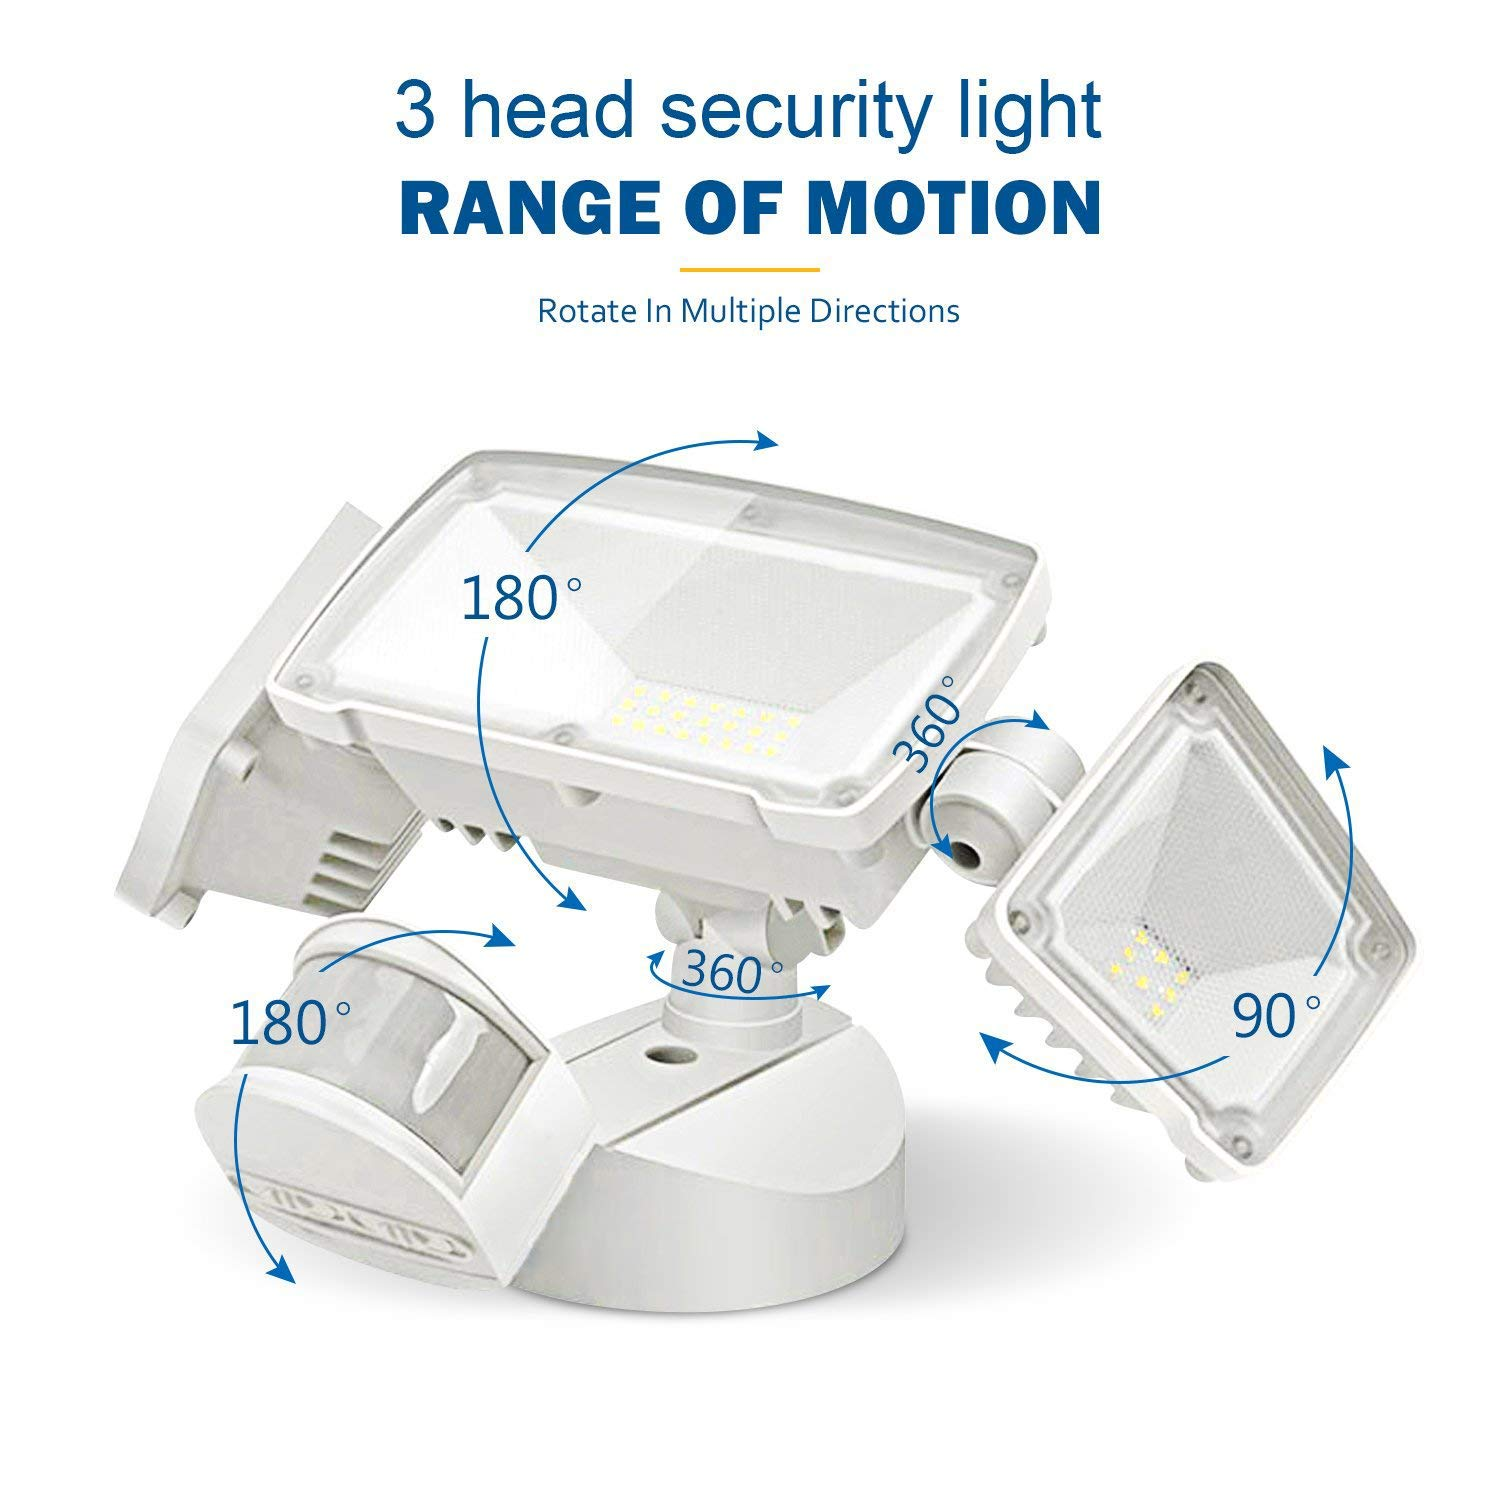 TOPNEW LED Security Light 42W Outdoor Motion Sensor Security Light 3 Heads Flood Light Waterproof 3000LM 6000K Adjustable Lighting Range 180° for Yard Stairs Garage Entryways by TOPNEW (Image #1)